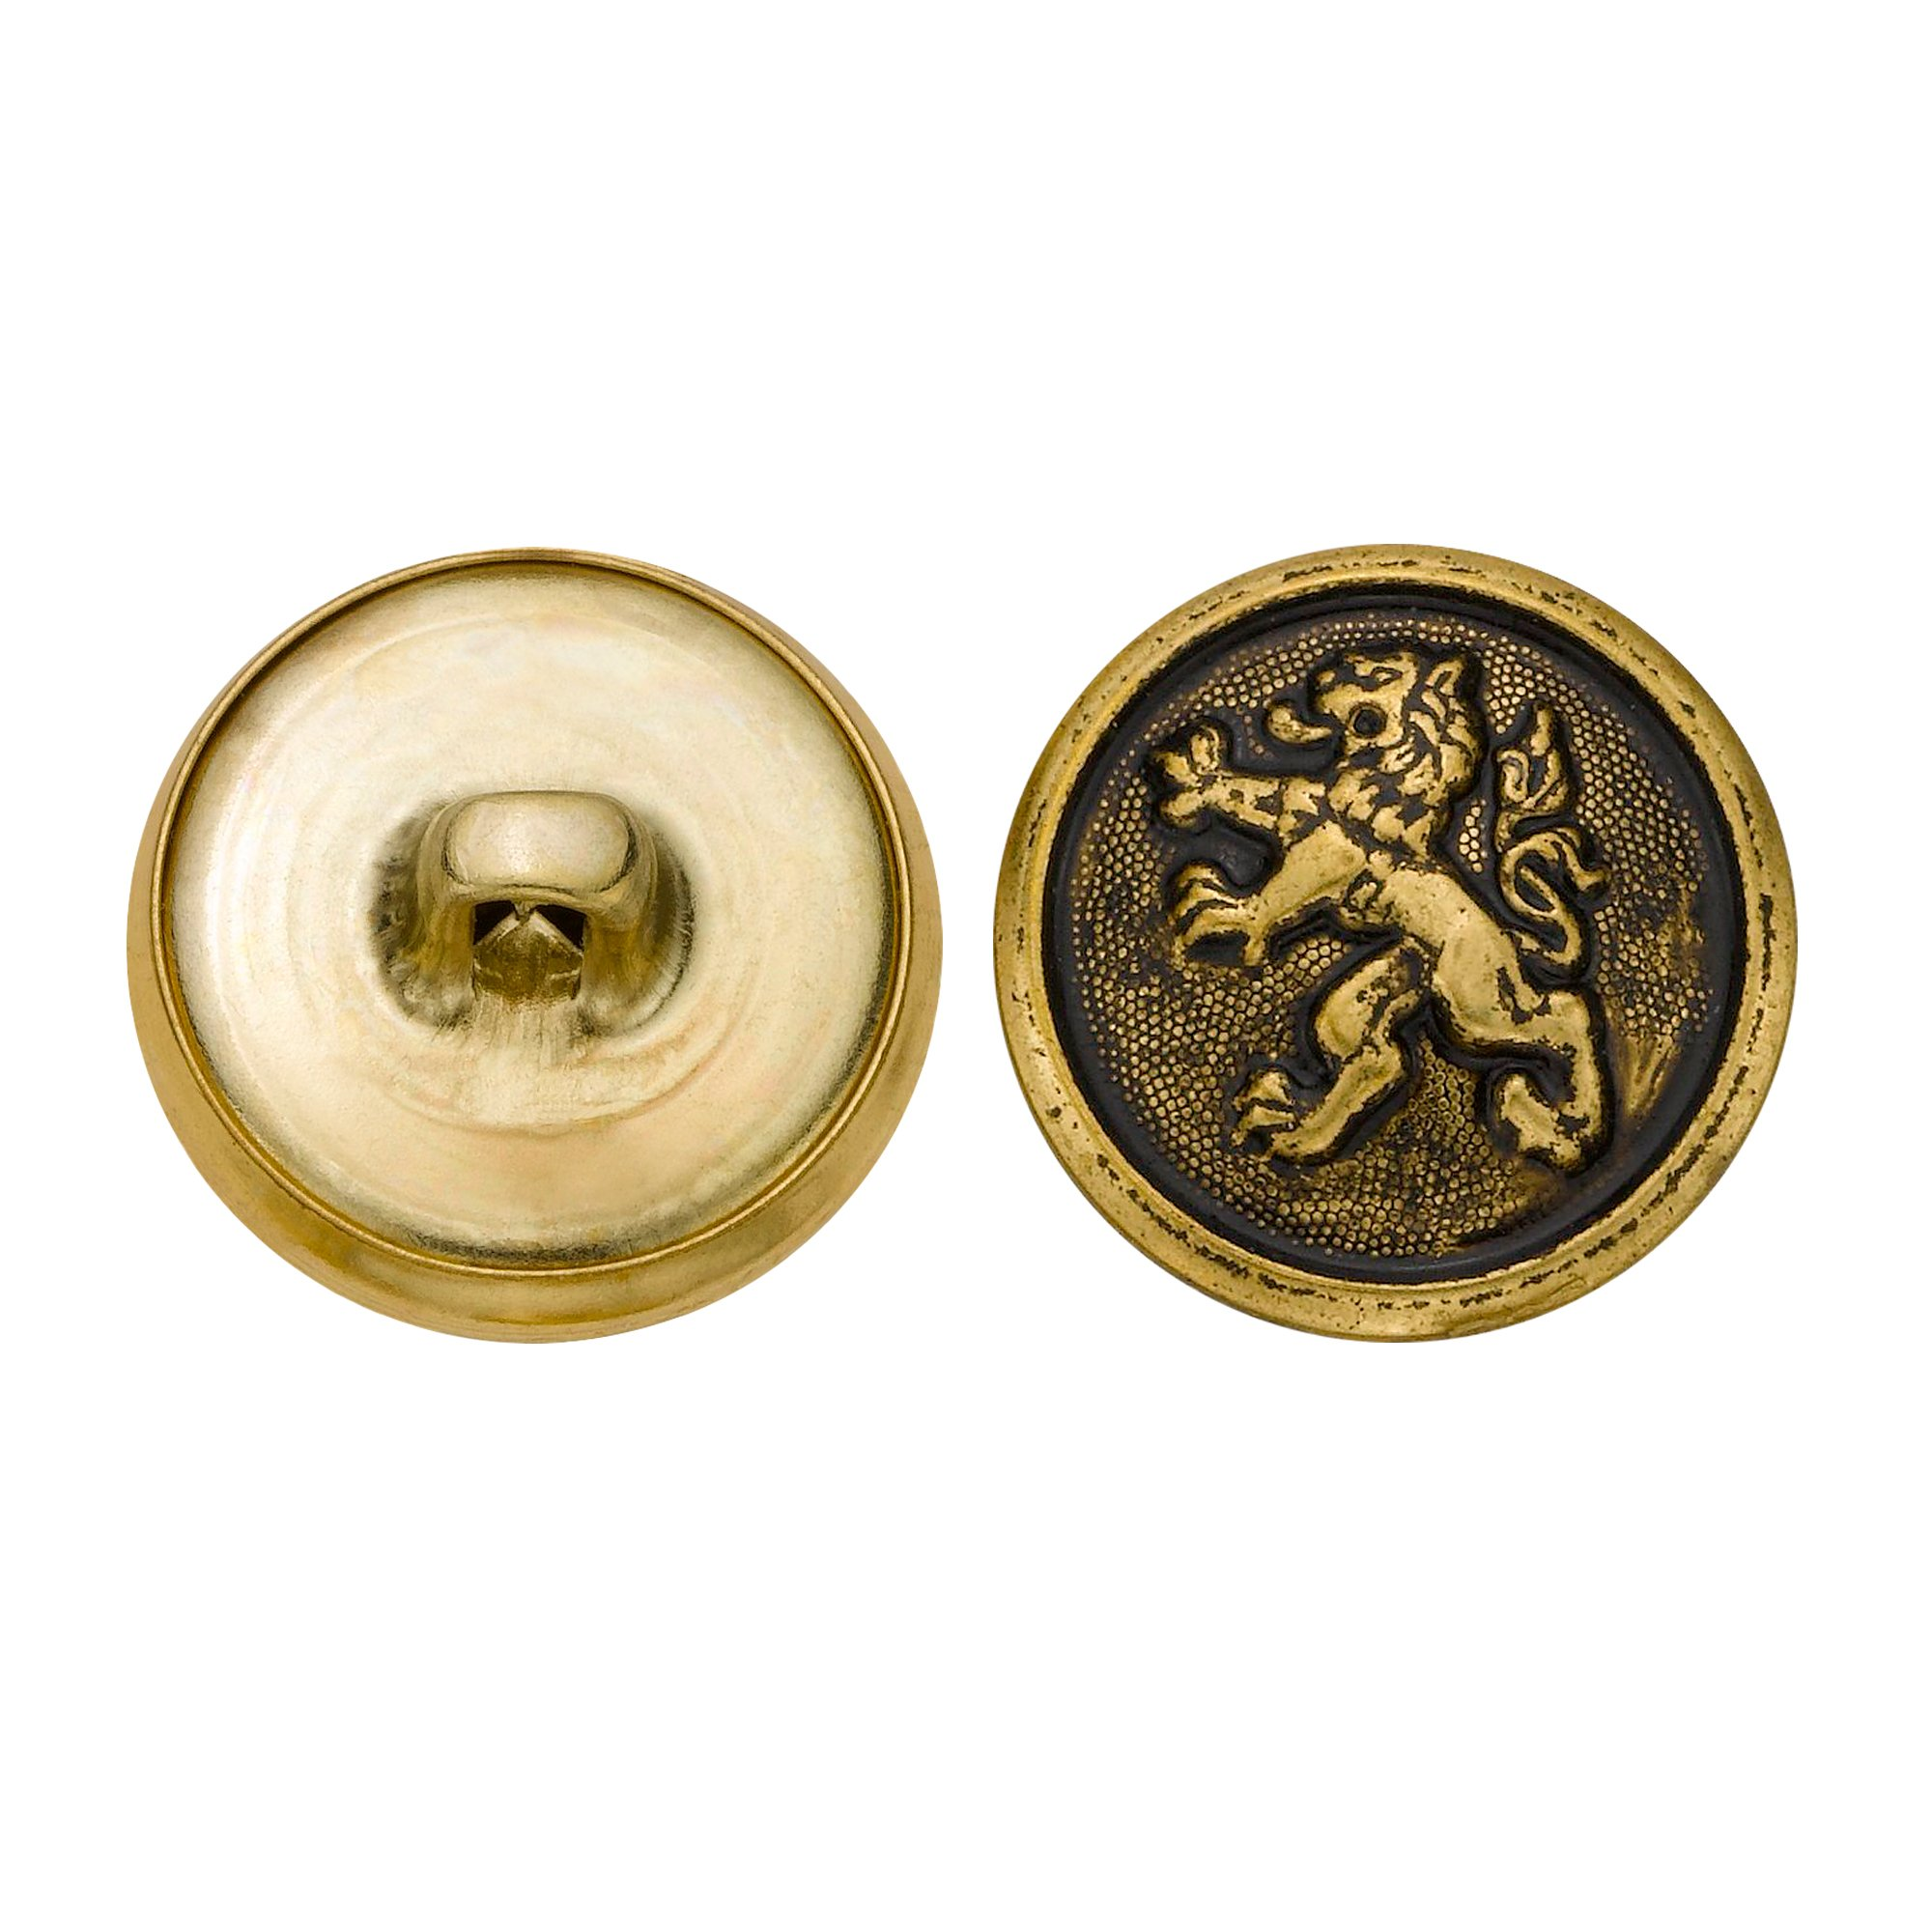 C&C Metal Products 5280 Chinese Lion Metal Button, Size 30 Ligne, Antique Gold, 36-Pack